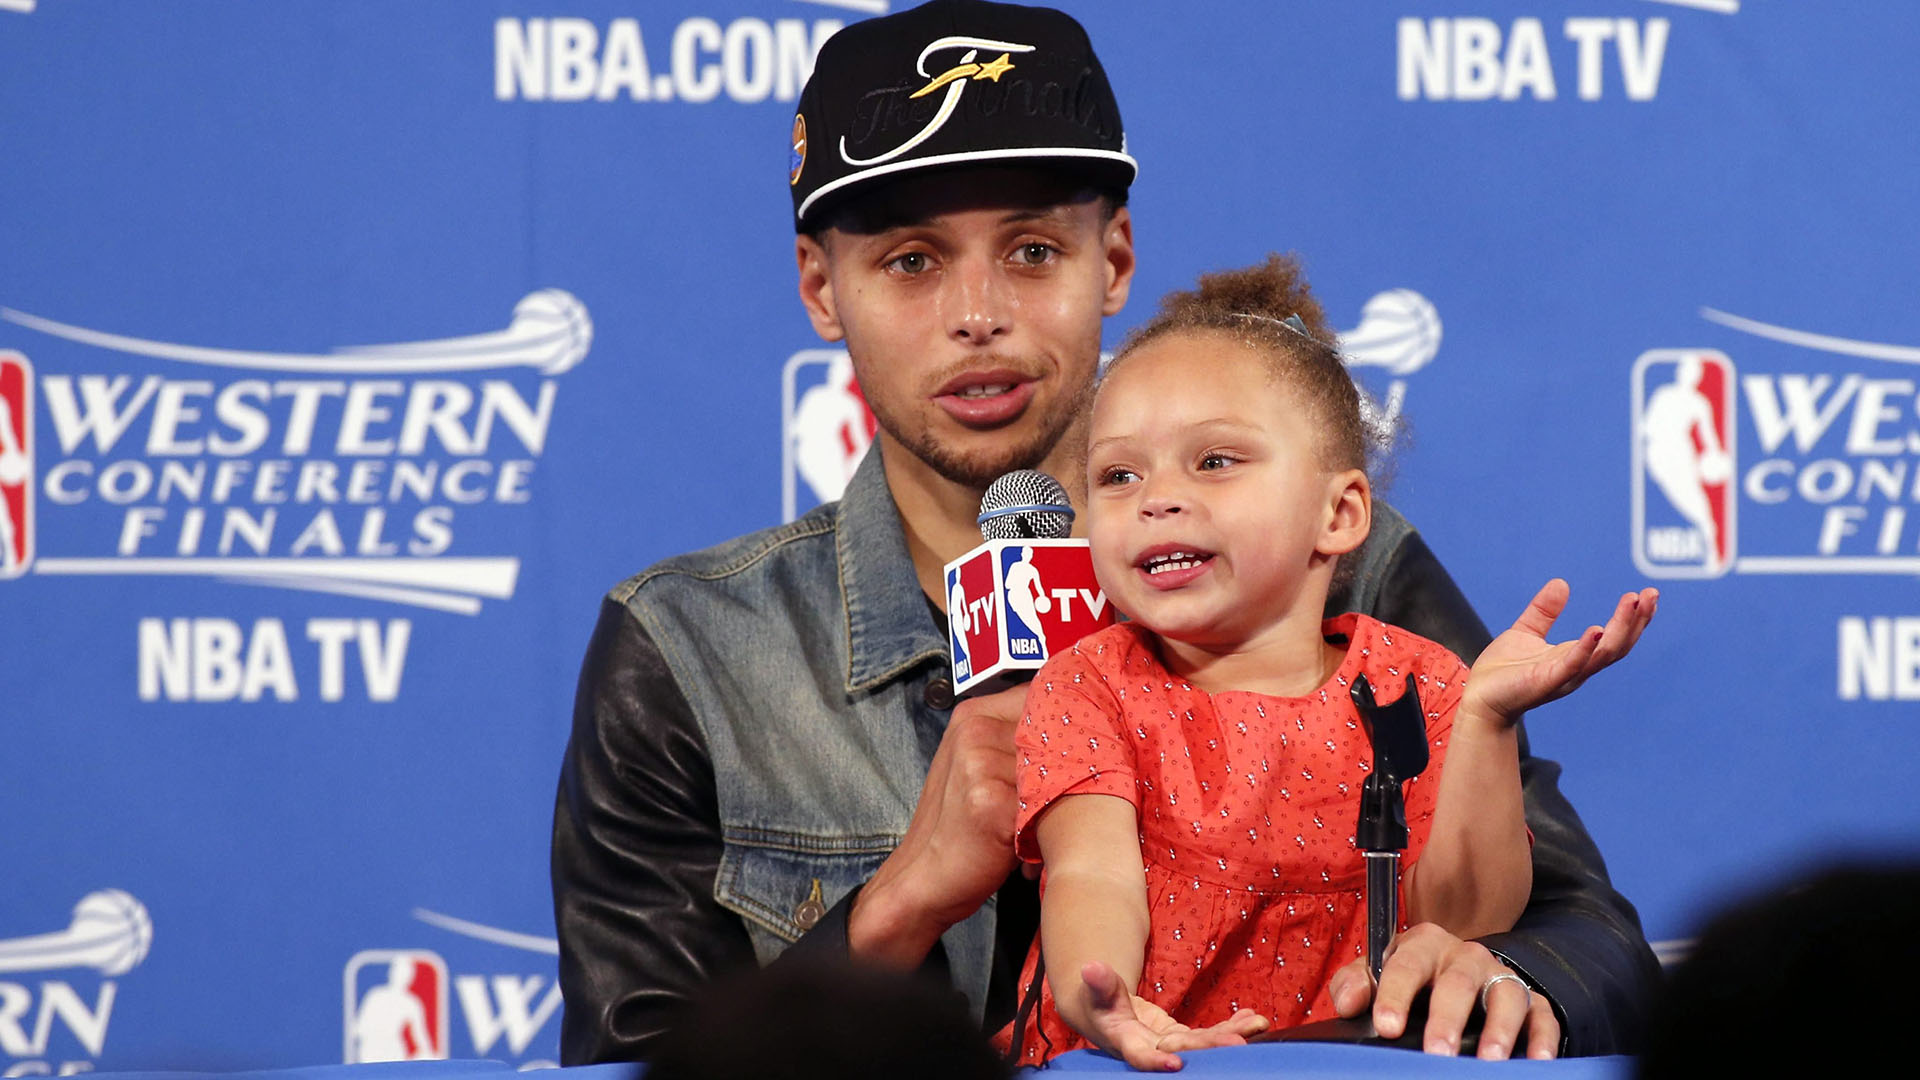 c3fd3a60abb1 Stephen Curry s daughter steals press conference spotlight — again!